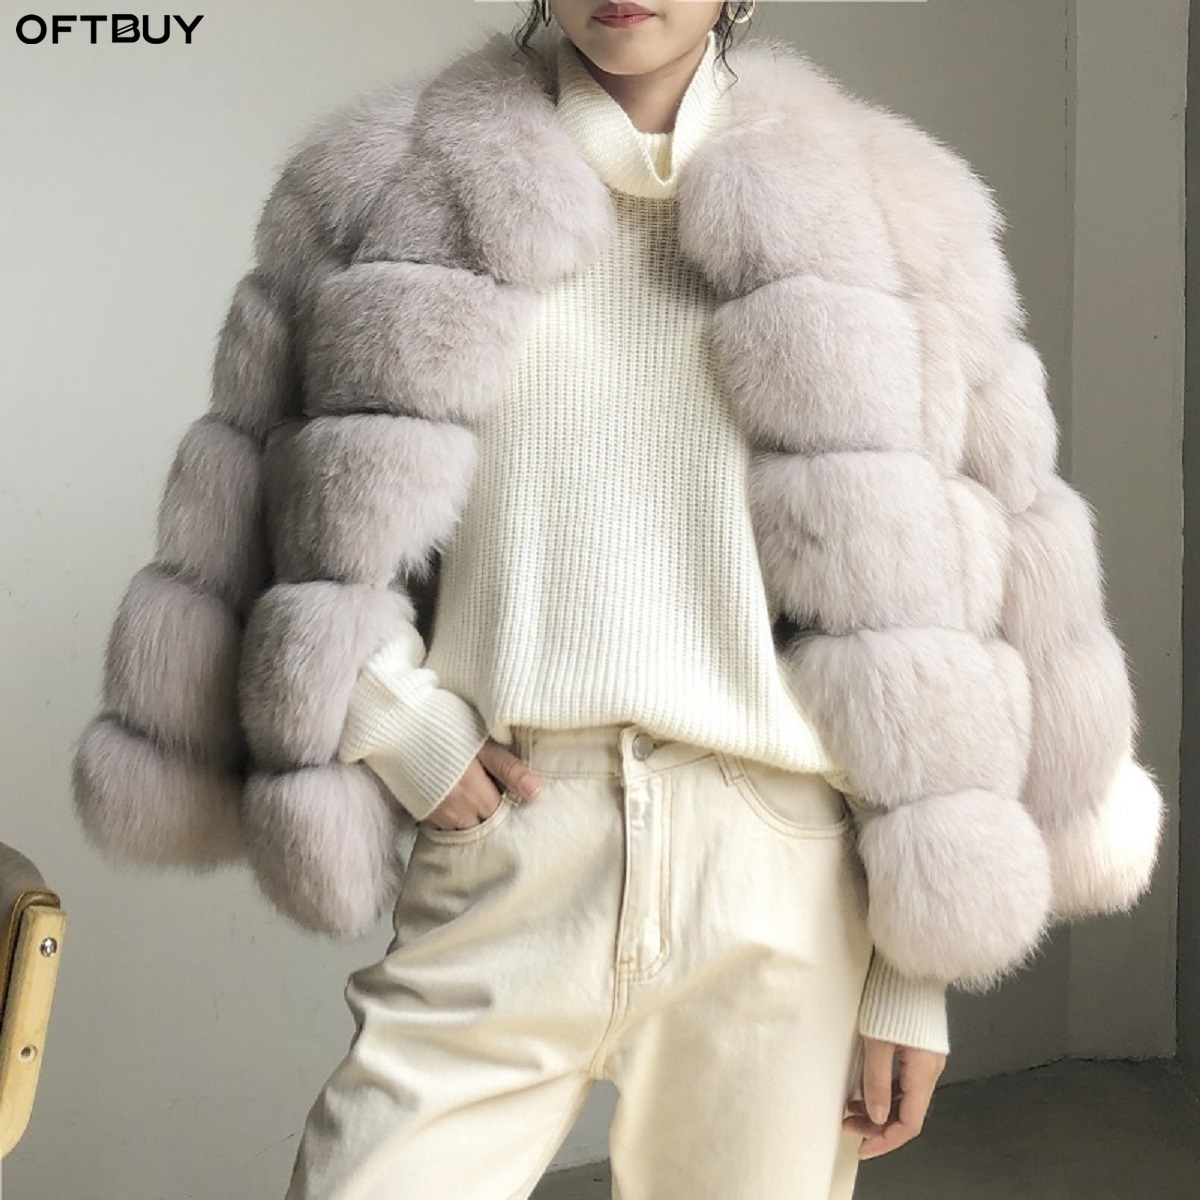 OFTBUY 2019 Real Fur Coat Winter Jacket Women Natural Fox Fur Thick Warm Streetwear Casual Female Outerwear Korea Fashion Brand